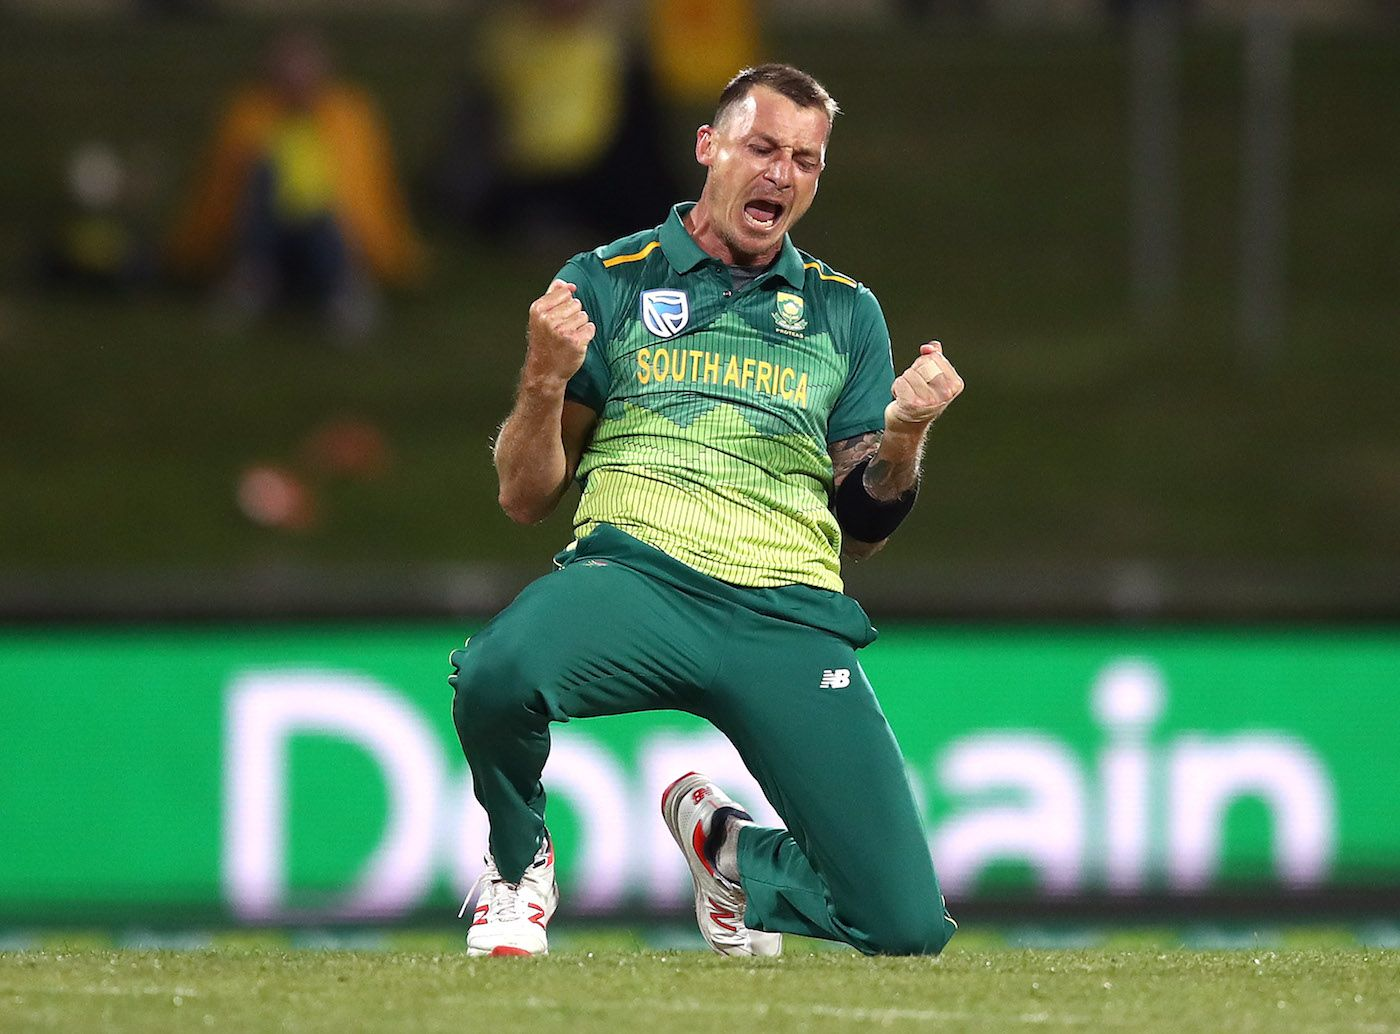 Dale Steyn has made a terrific comeback before the World Cup 2019